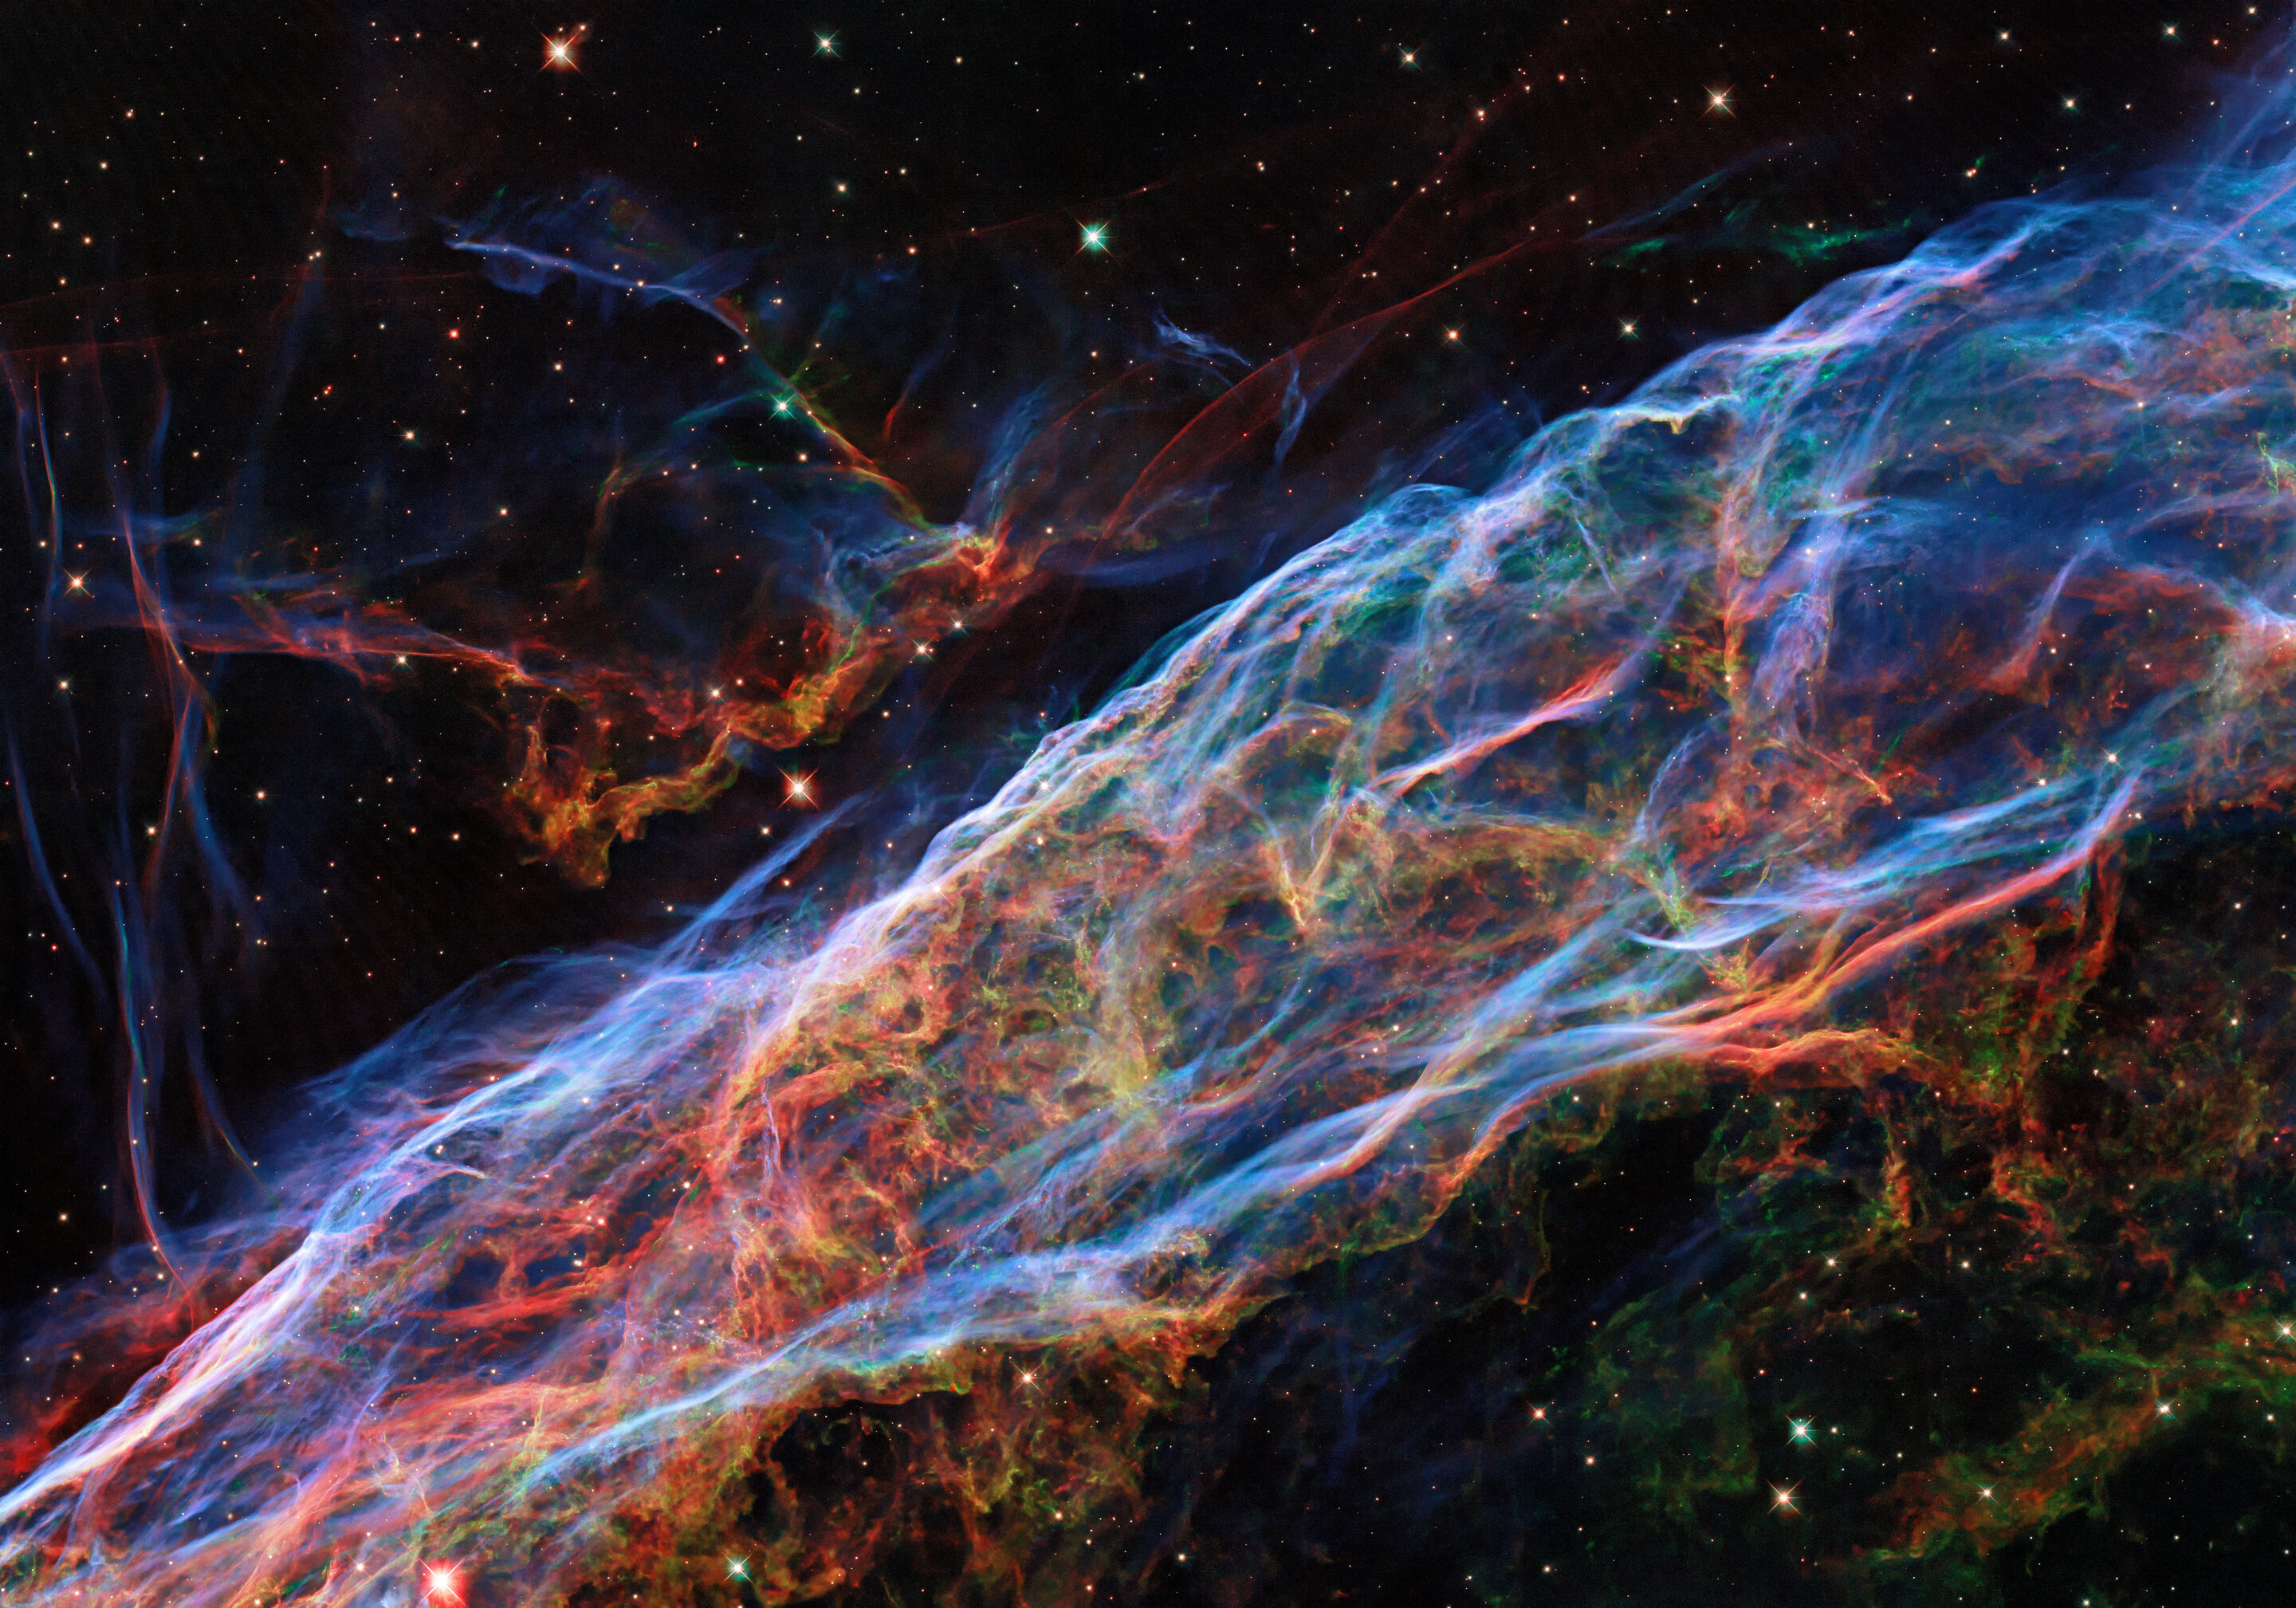 Hubble revisits the Veil Nebula